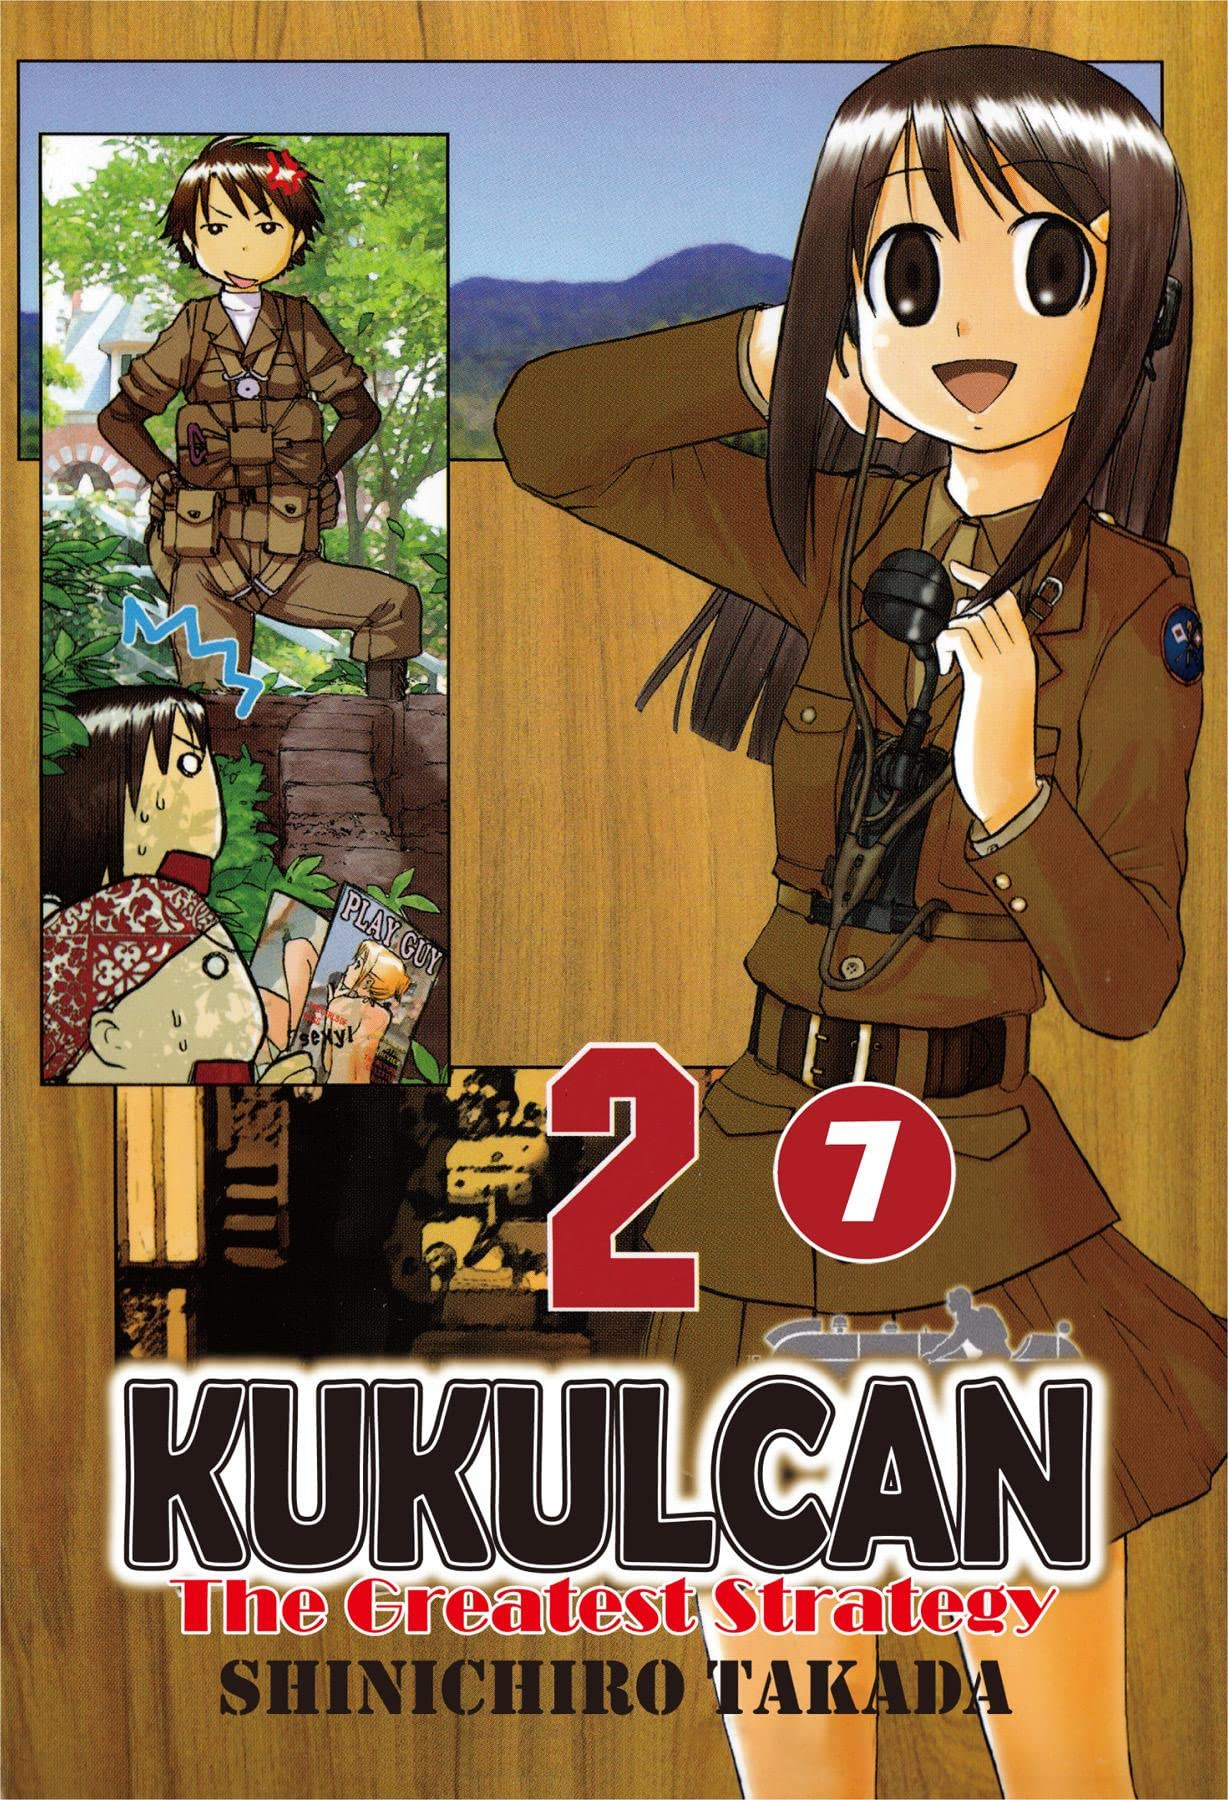 KUKULCAN The Greatest Strategy #14